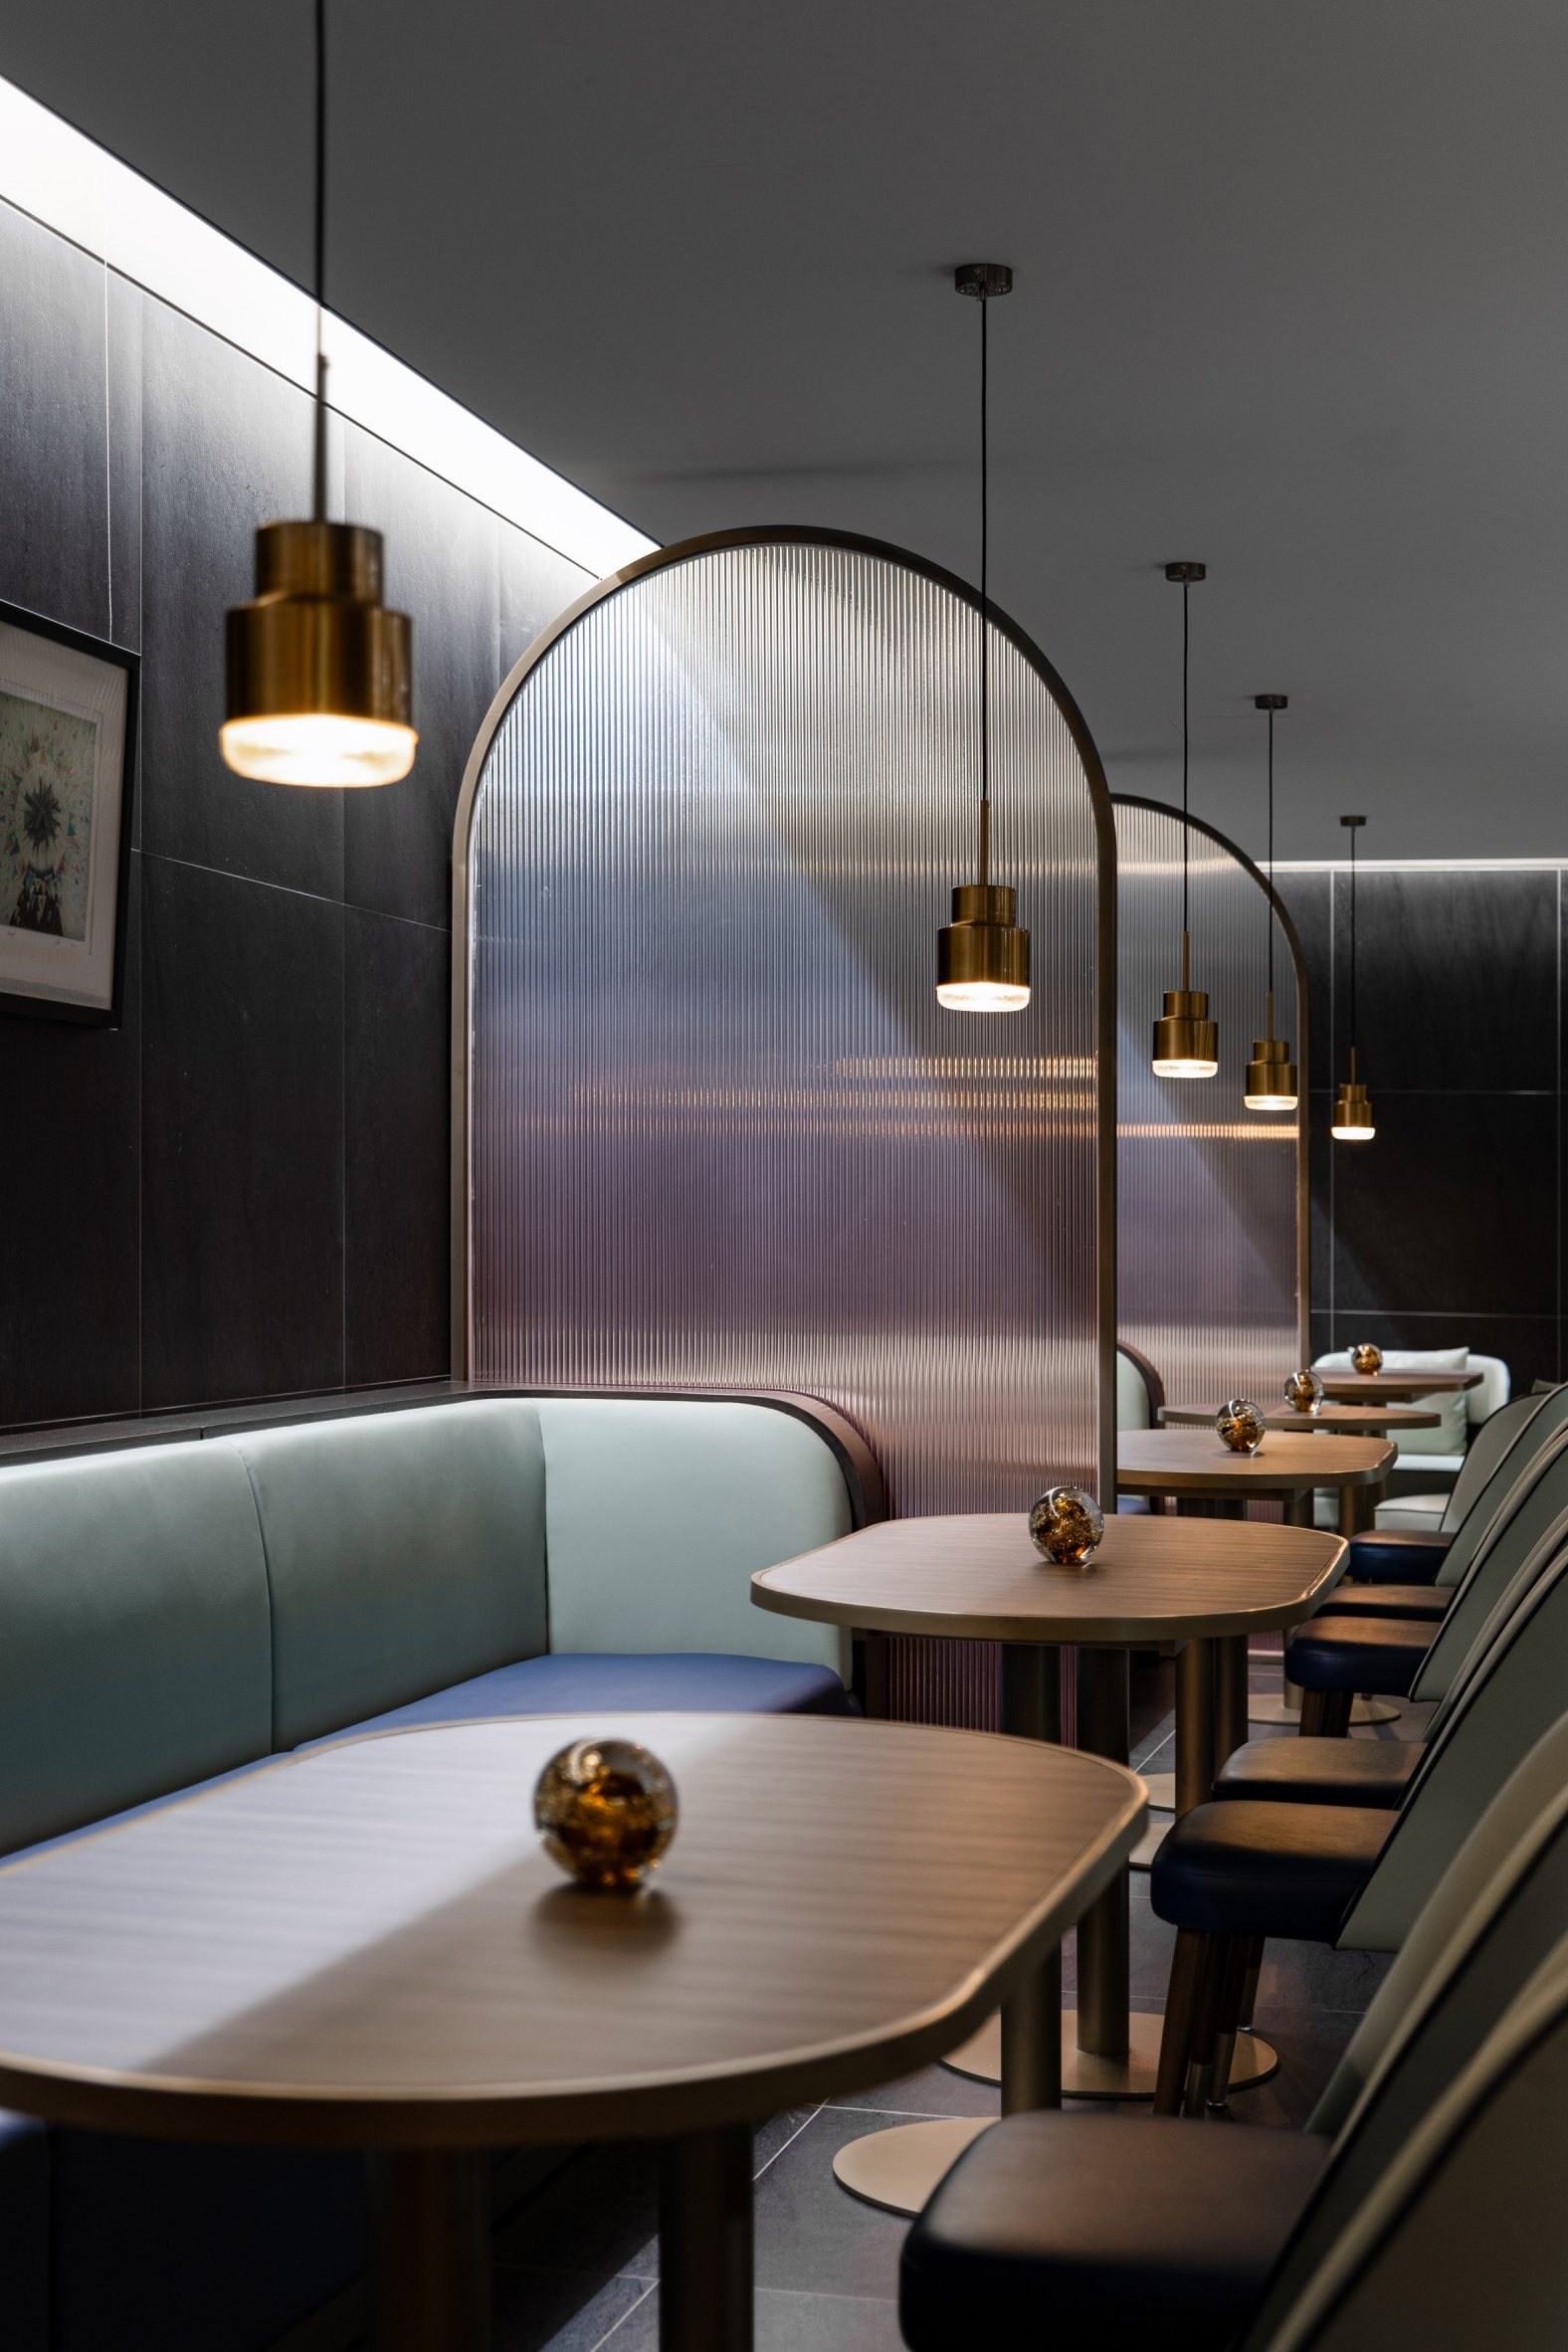 Ombre glass dividers in dining hall interior by SHH